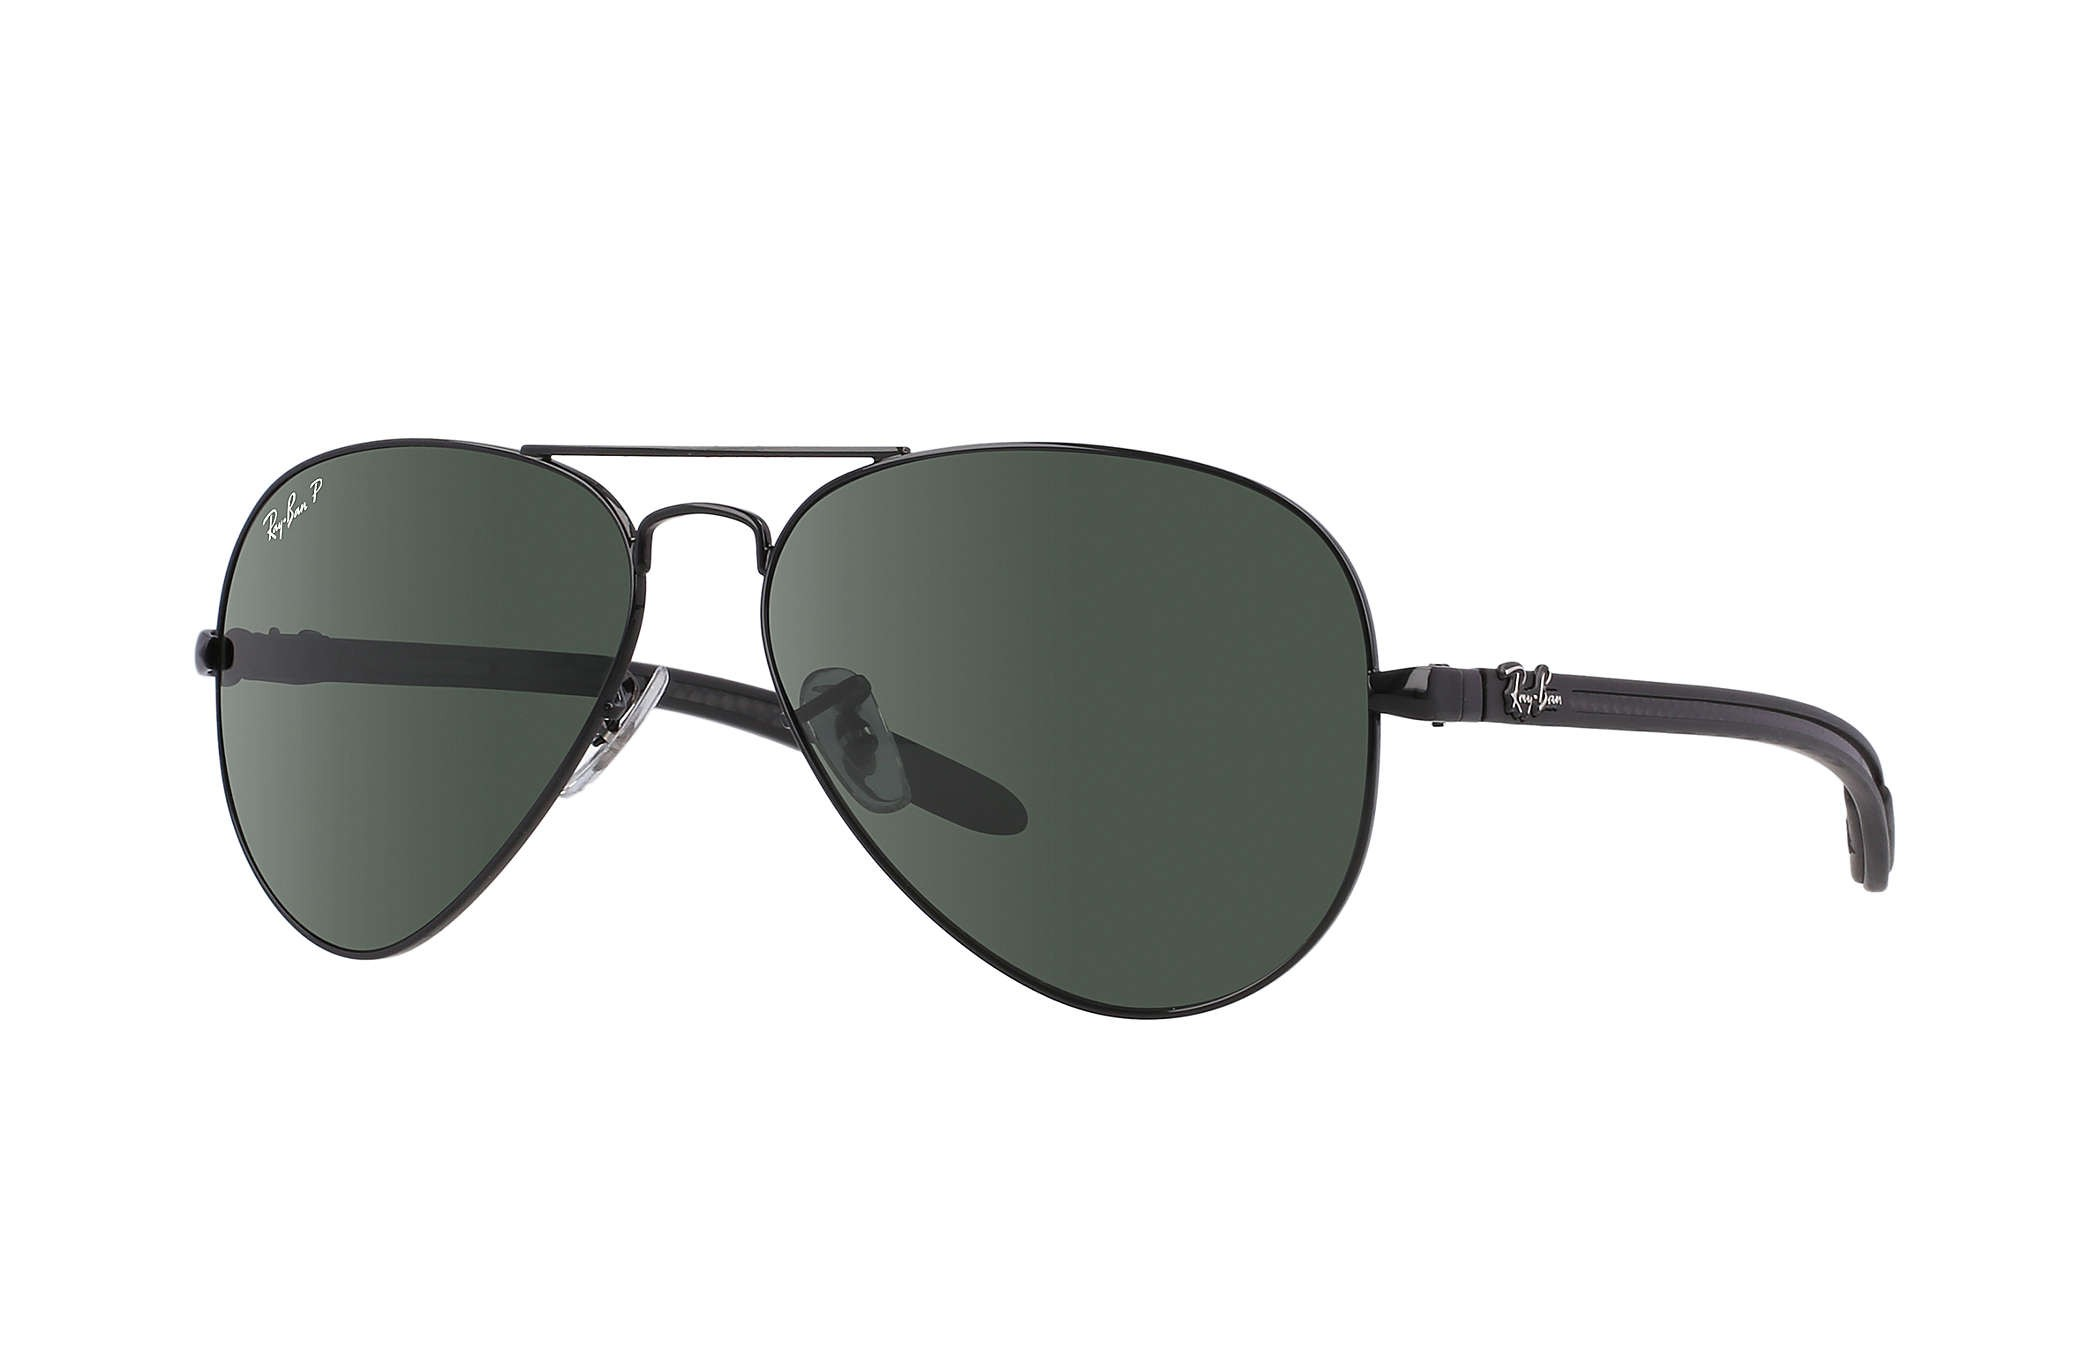 541481c7f0 Ray Ban Brand Positioning